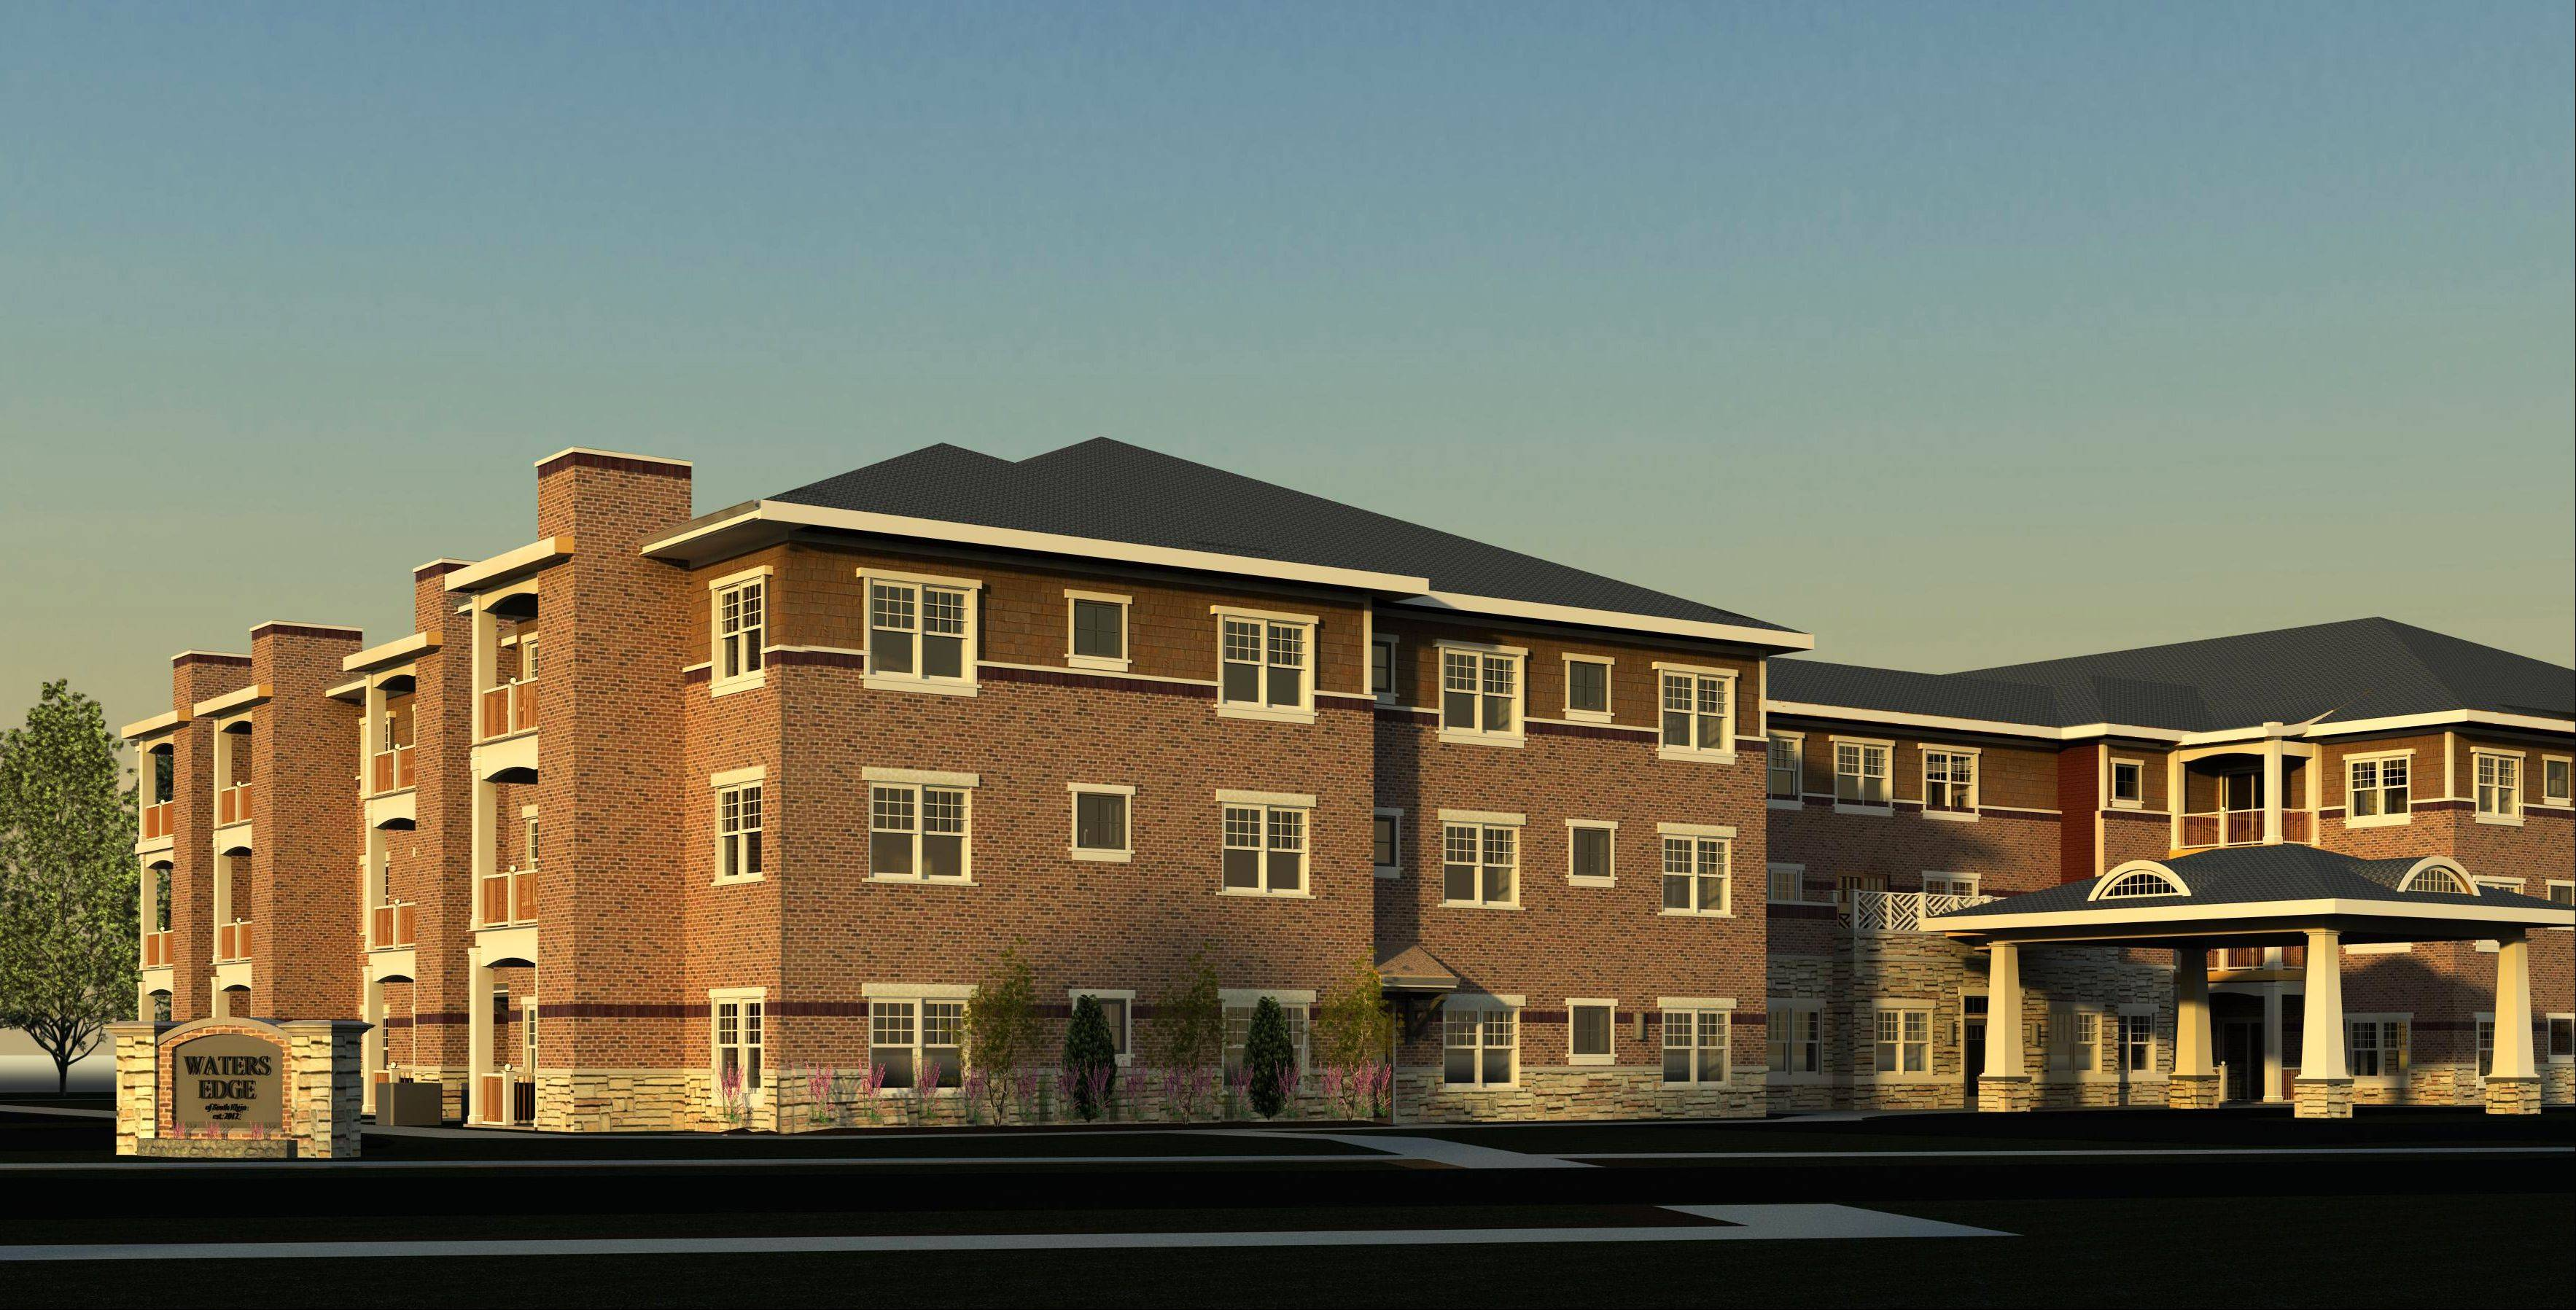 A rendering of the proposed development in South Elgin.